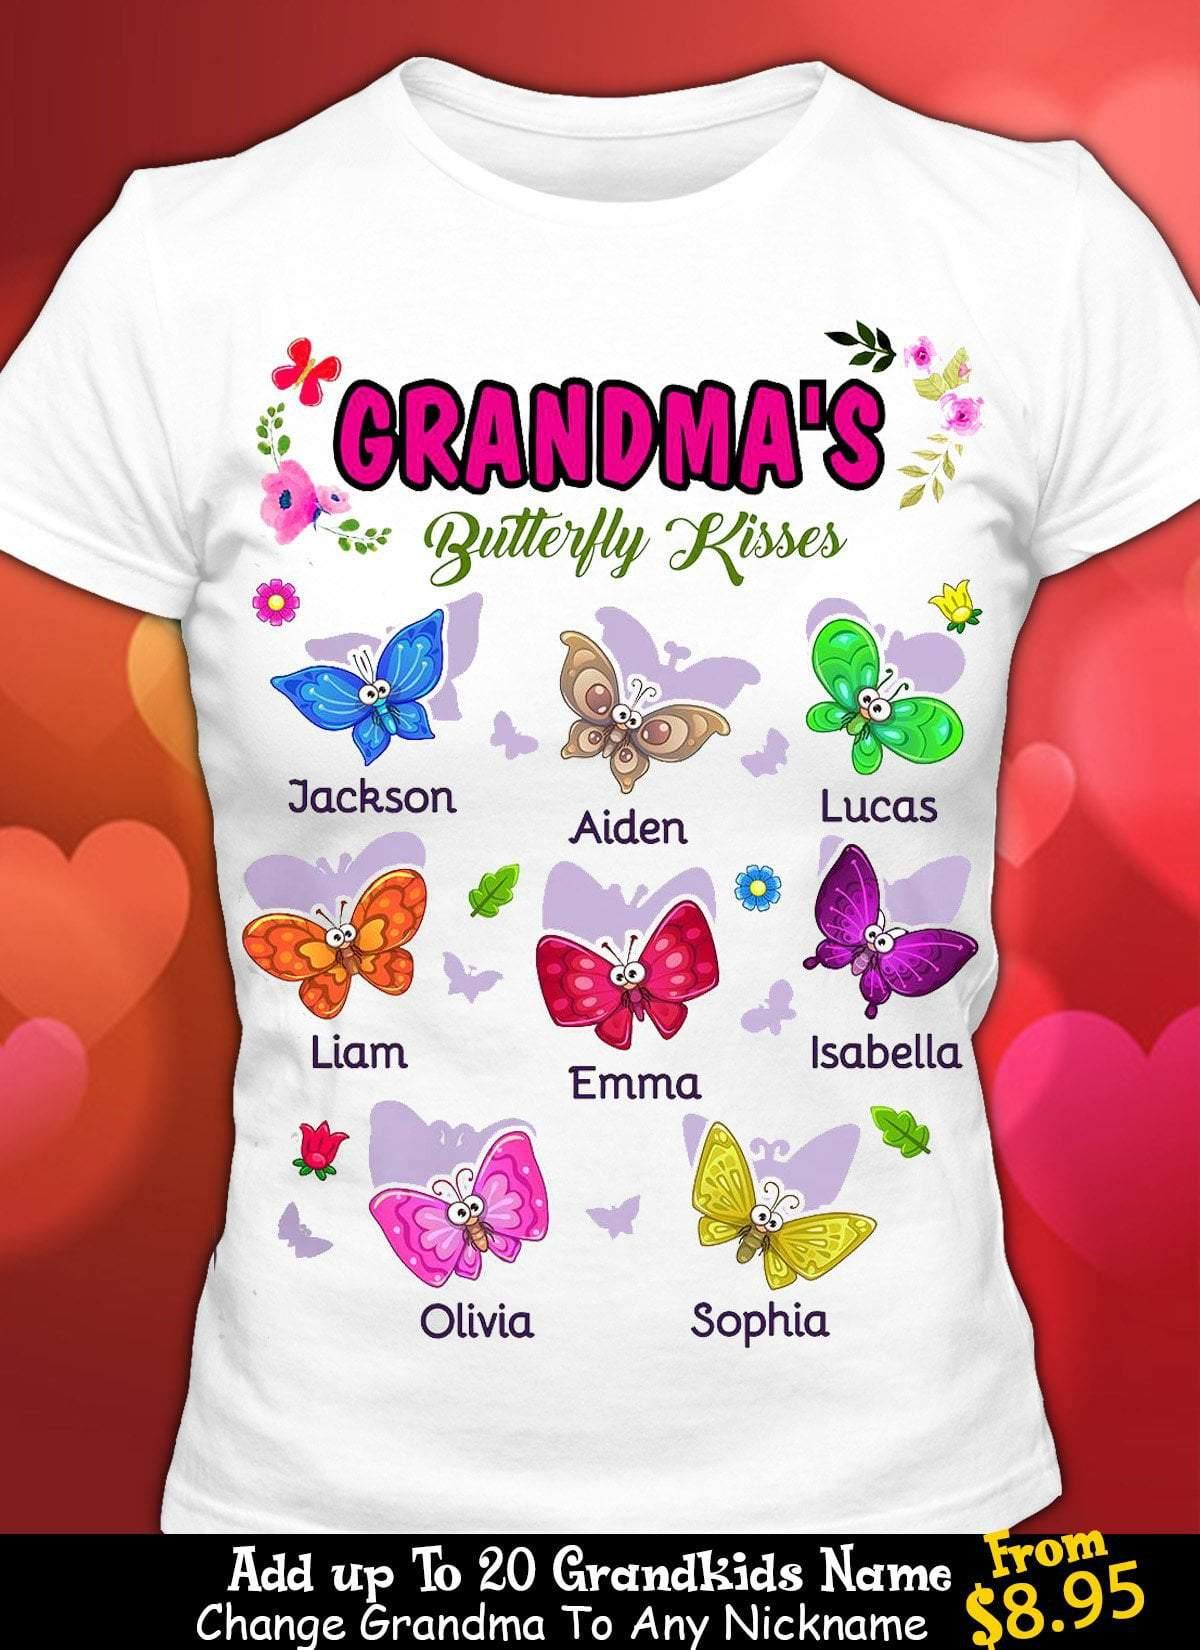 1 DAY LEFT - GET YOURS NOW - Persionalized Grandma Butterflies